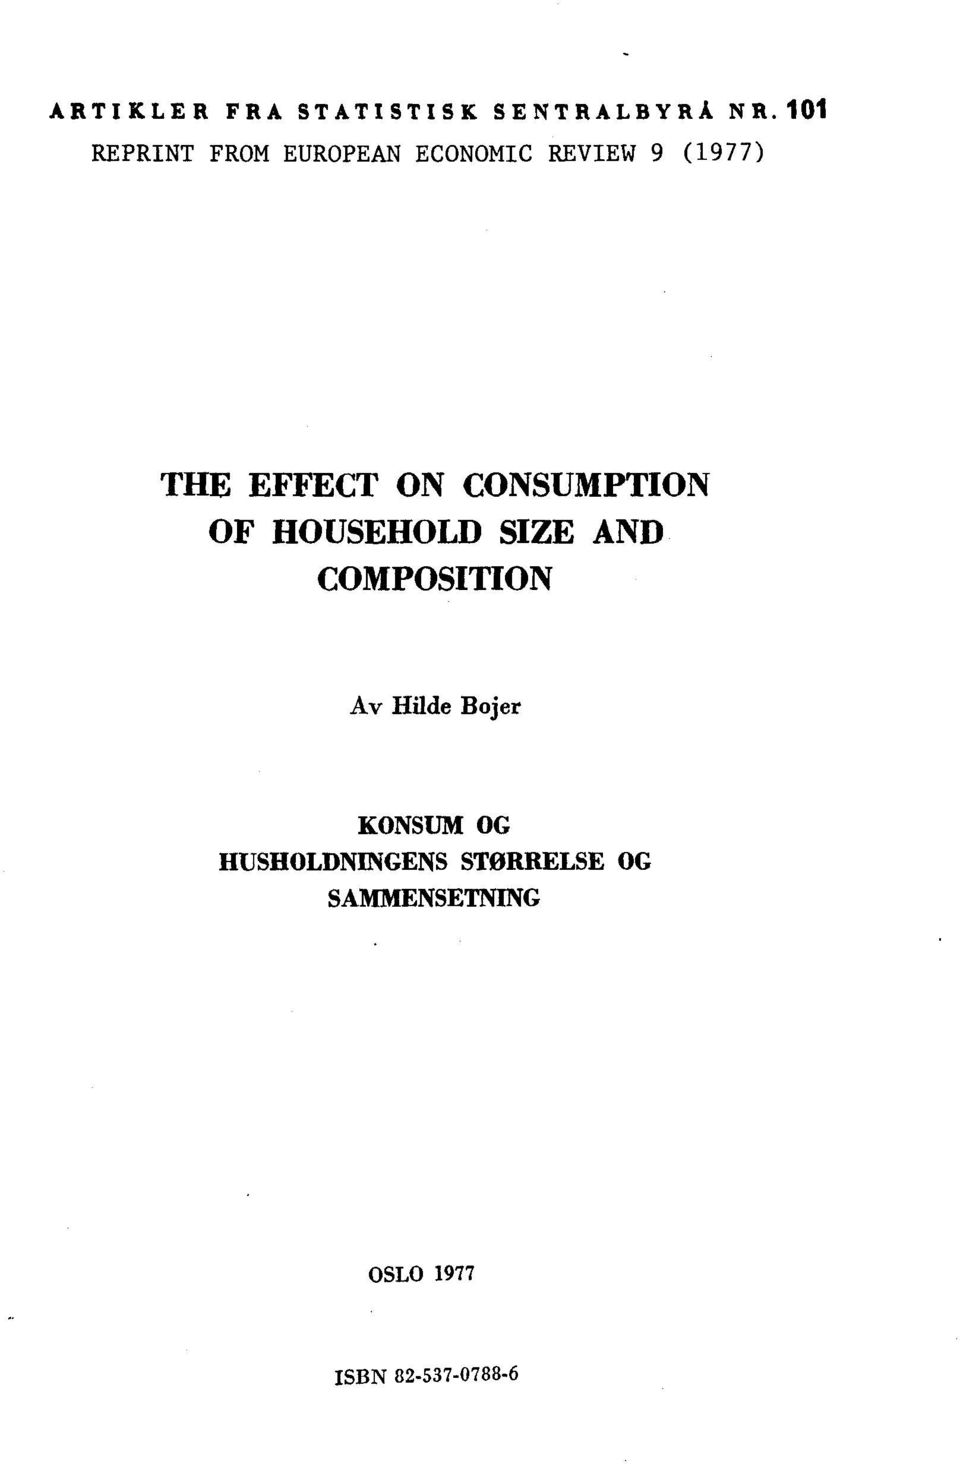 ON CONSUMPTION OF HOUSEHOLD SIZE AND COMPOSITION Av Hilde